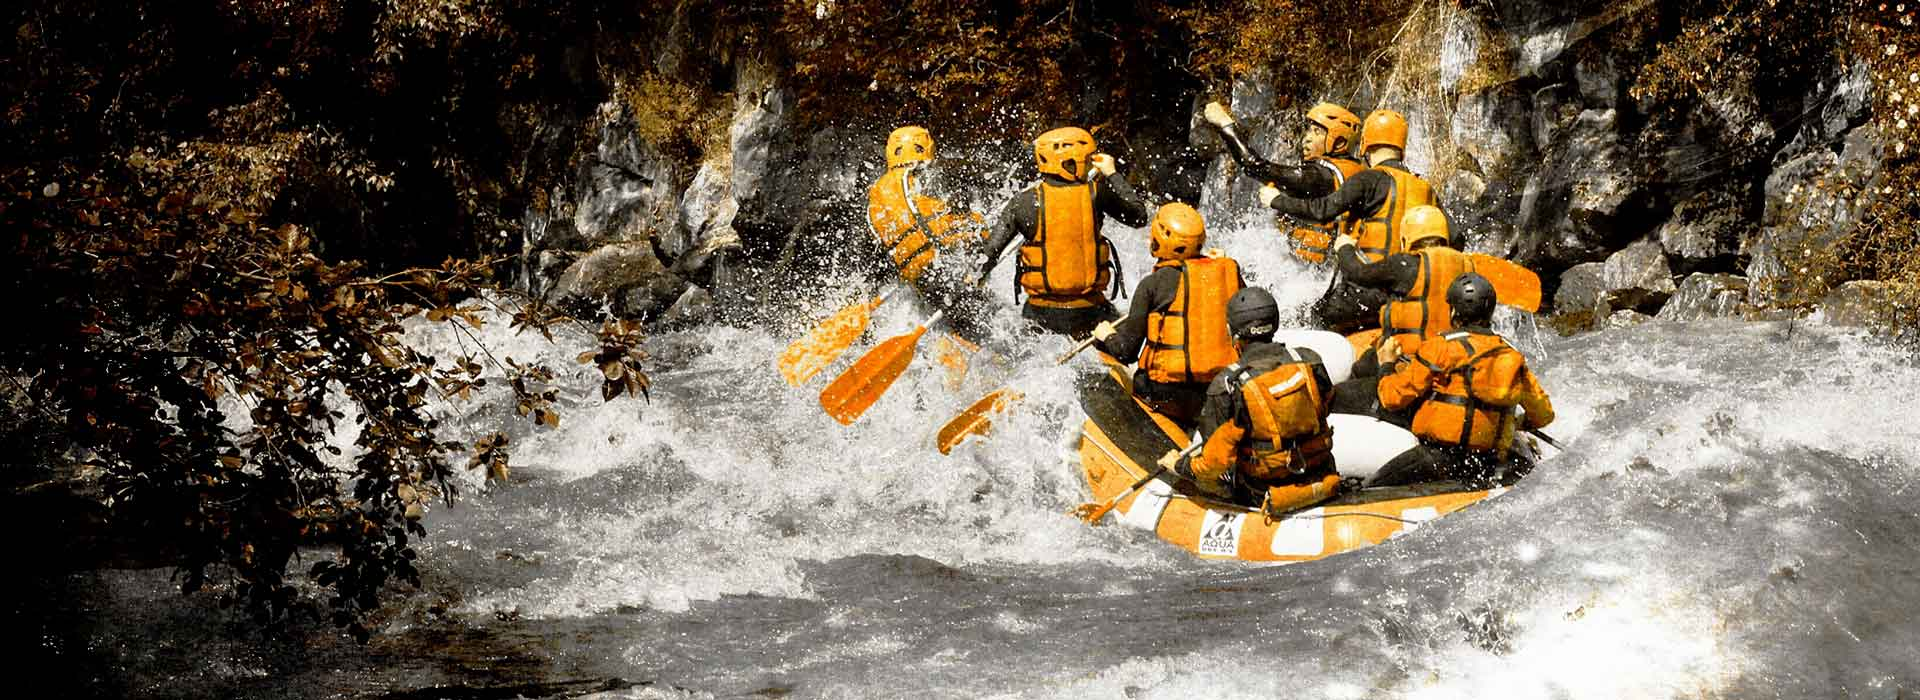 White Water weekend in Val d'Aoste